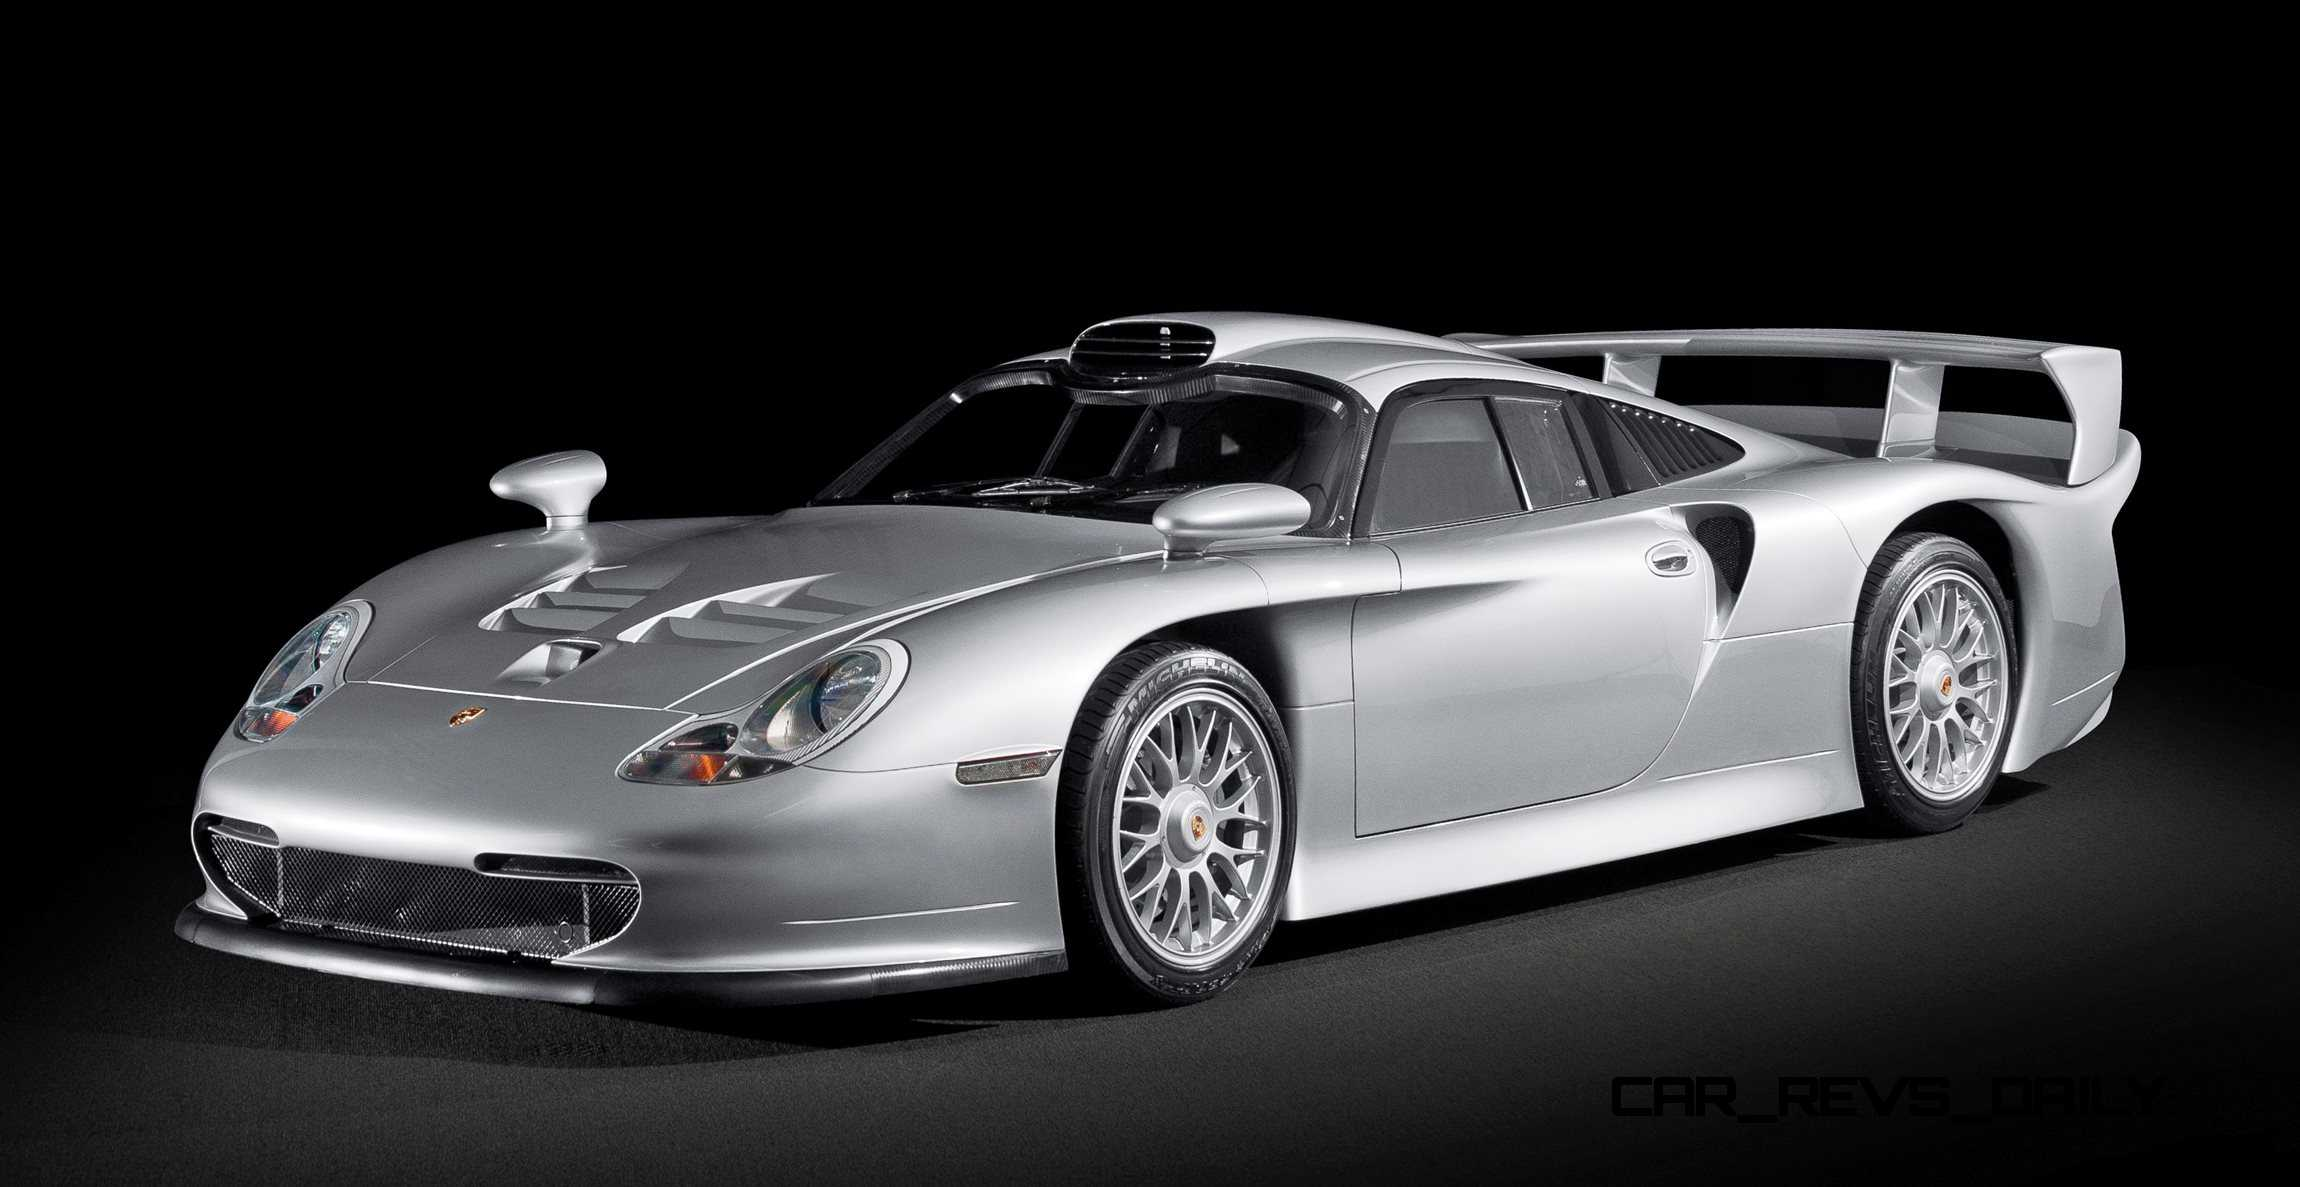 1998 Porsche 911 Gt1 Evo Strassenversion